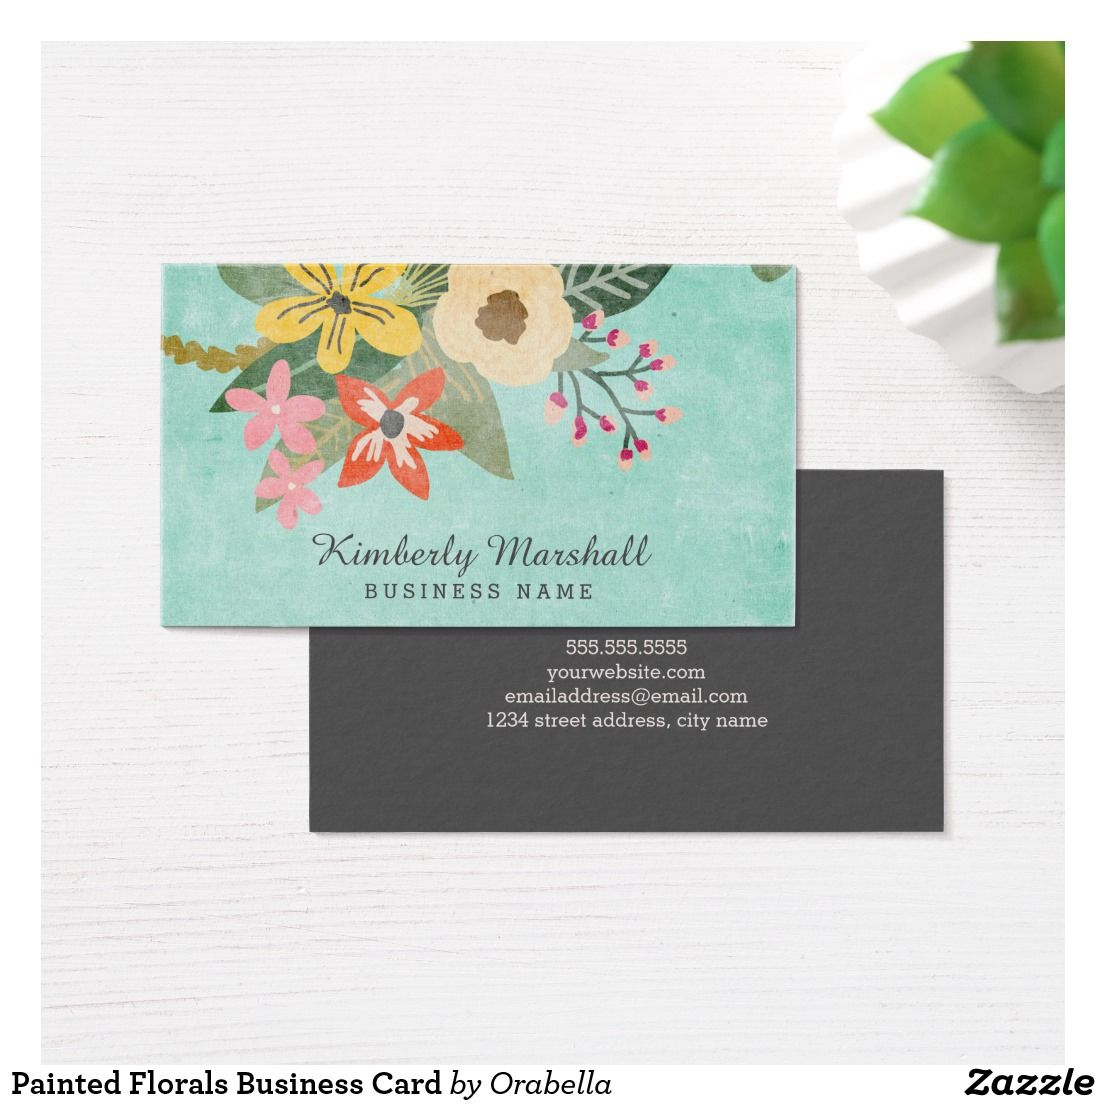 Painted Florals Business Card | Chic Business Cards for Networking ...